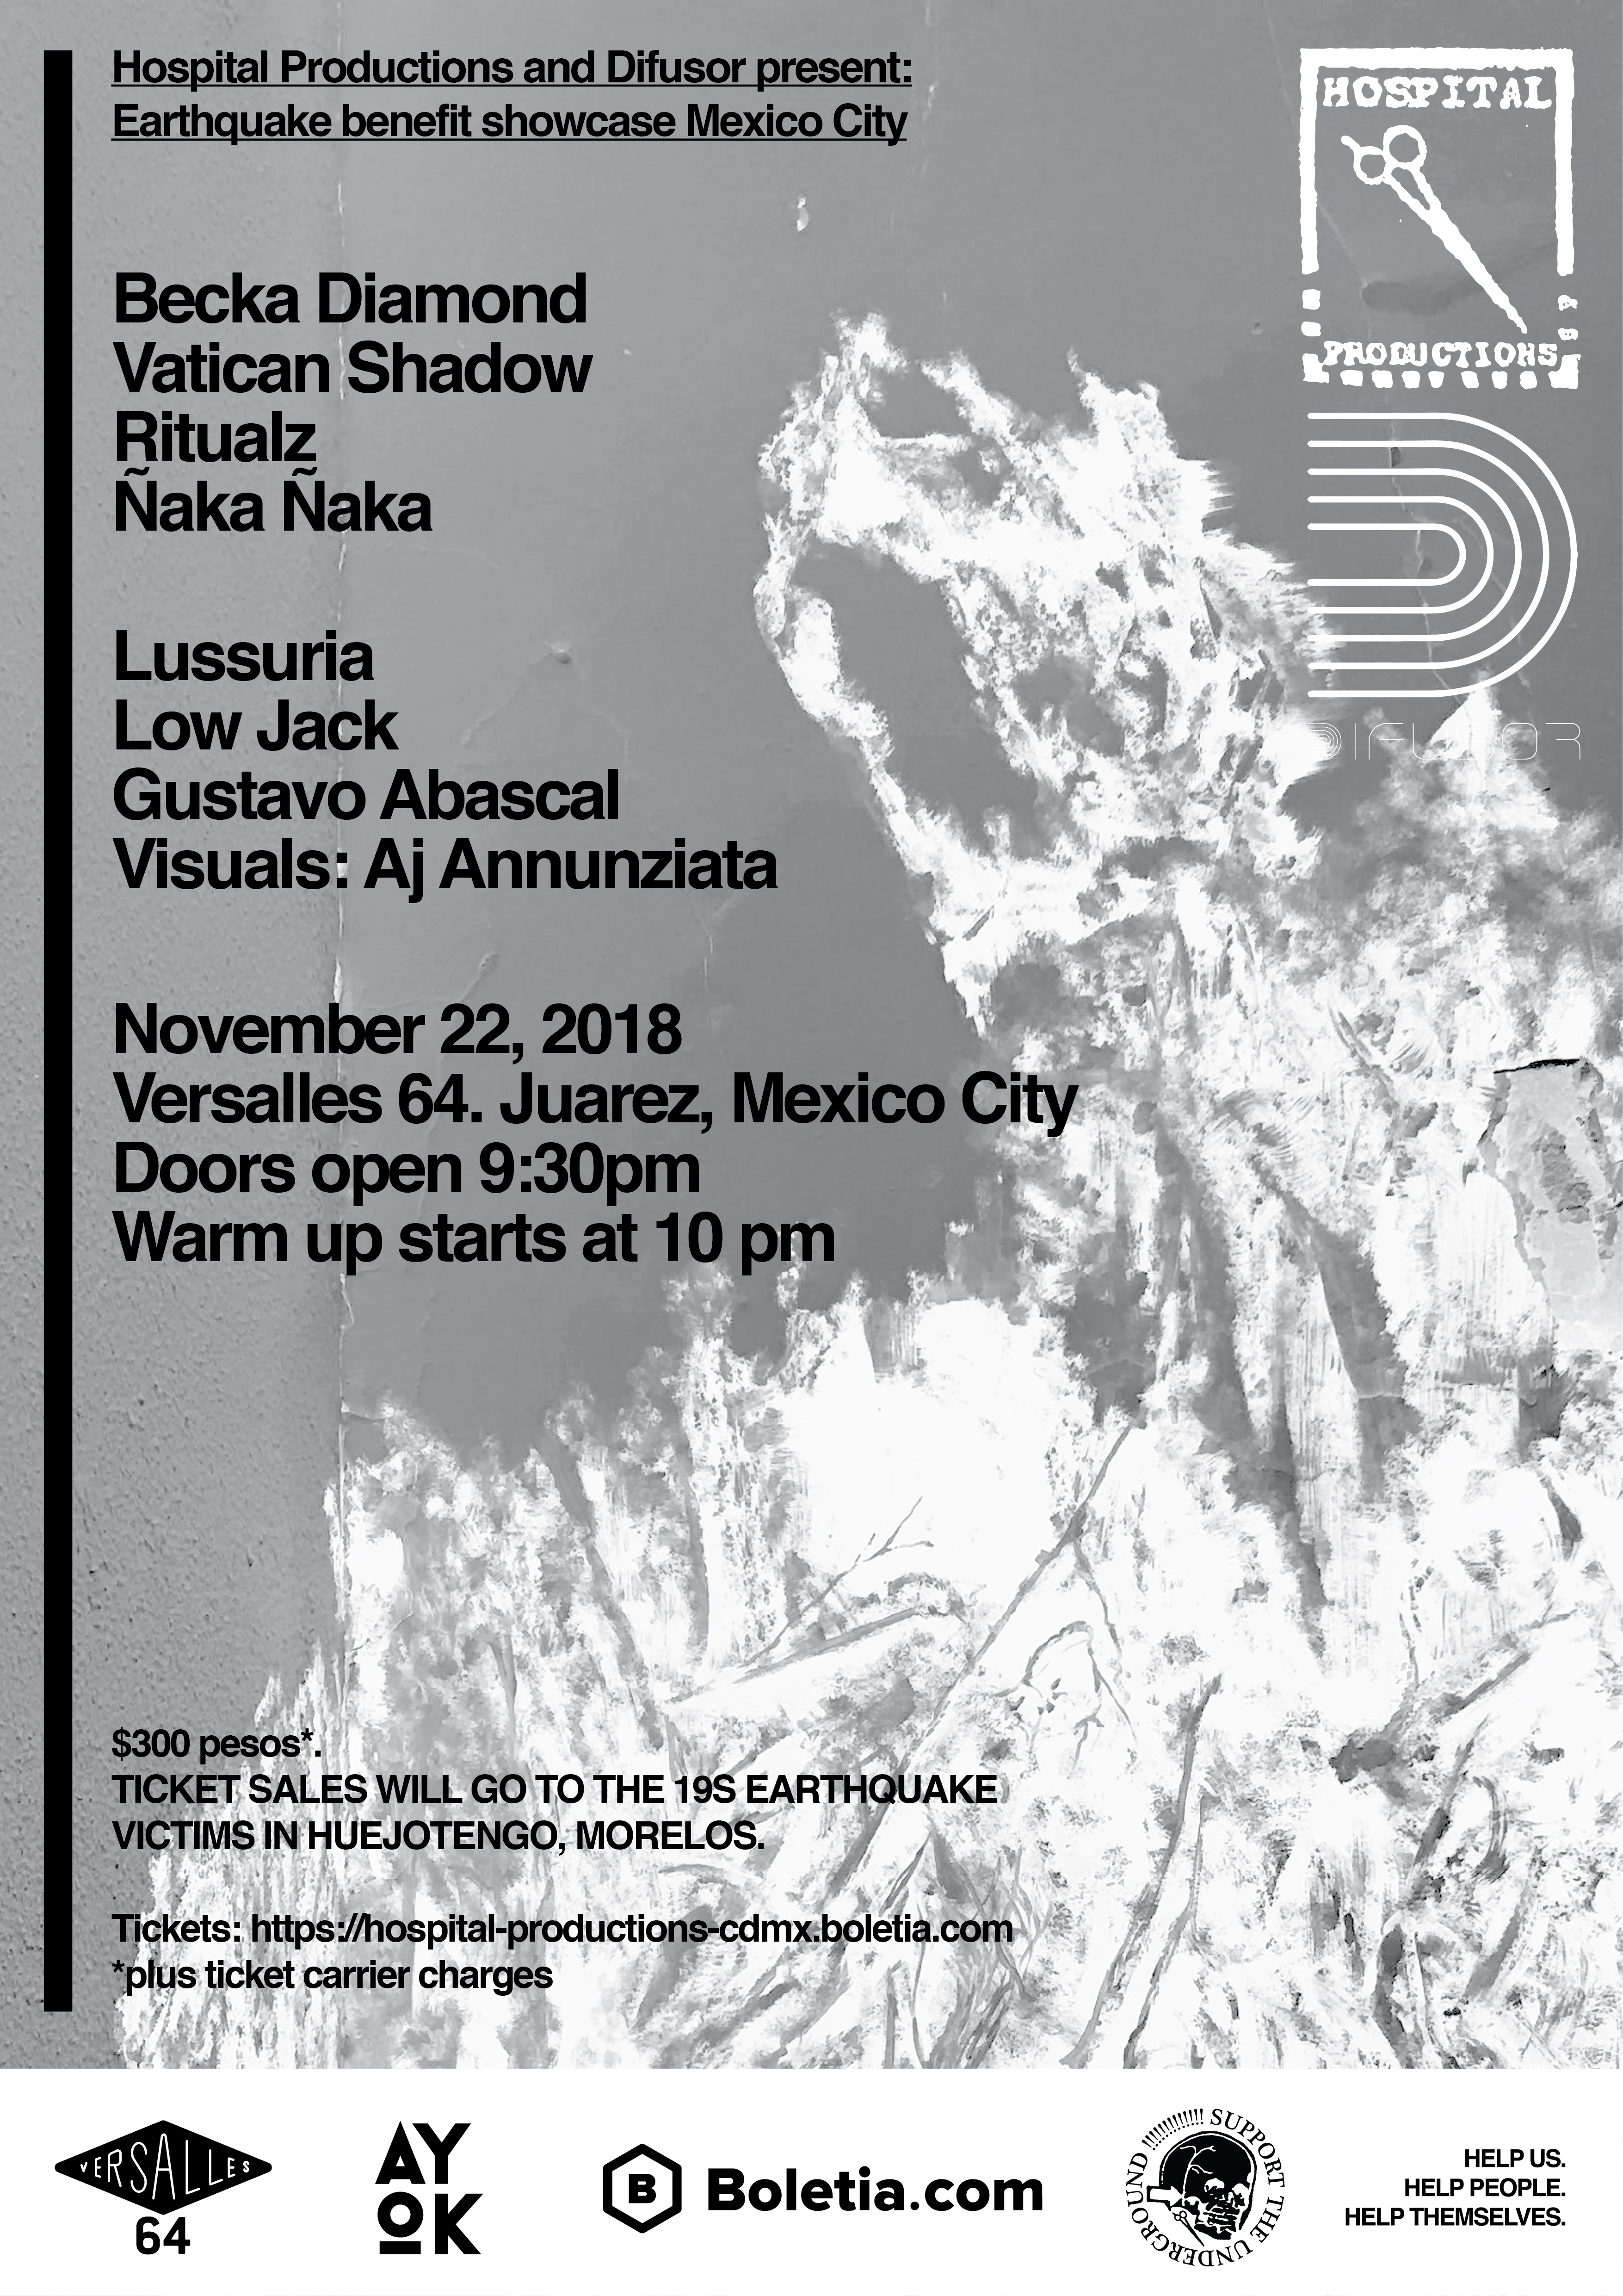 Hospital Productions to host Mexico City earthquake benefit showcase